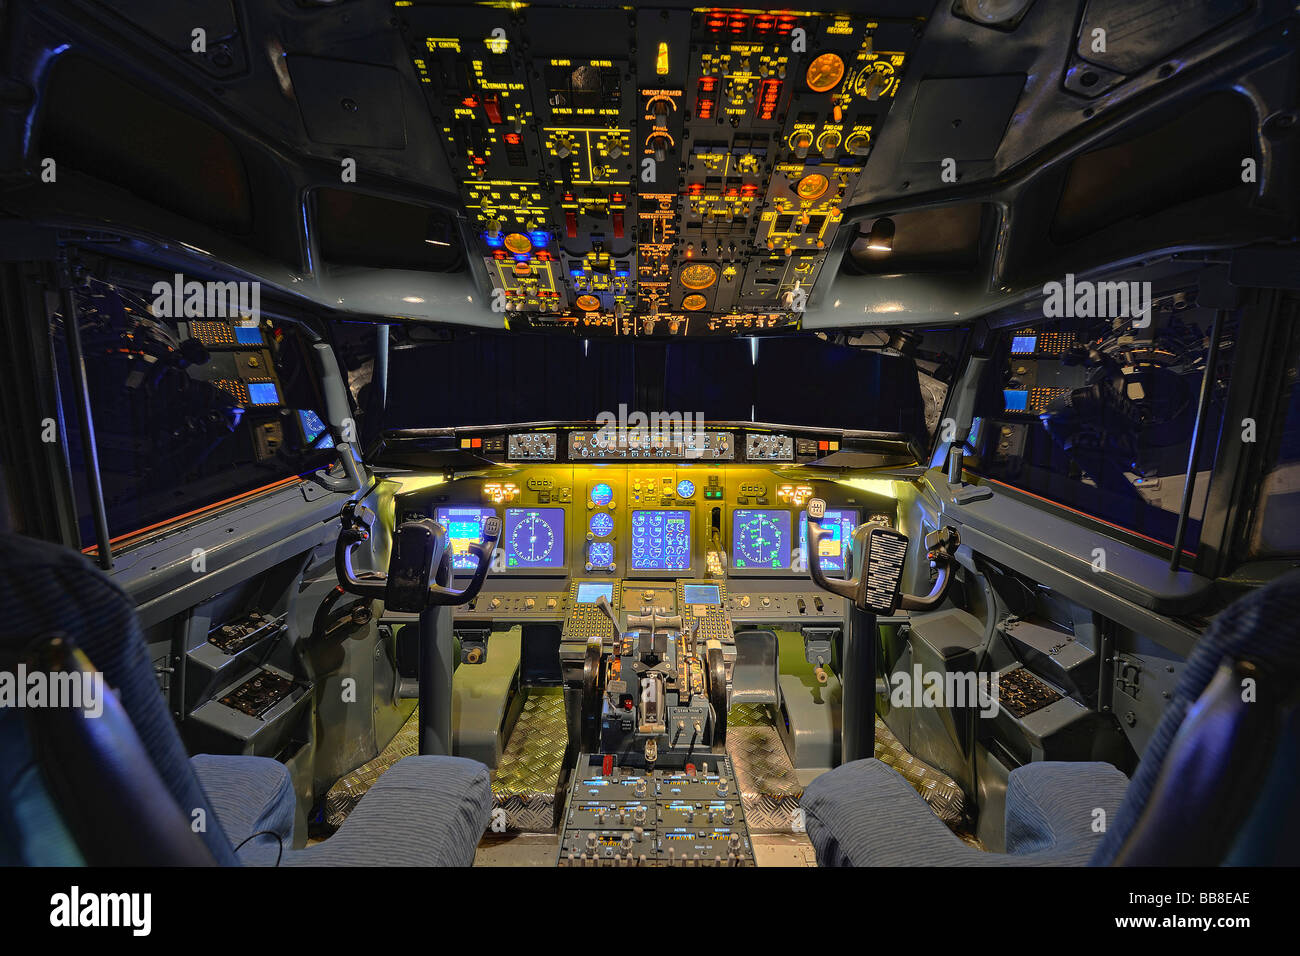 View of the cockpit of a Boeing 737 - 700 in a flight simulator by the Wulff/Zellner GbR company, Berlin, Germany - Stock Image